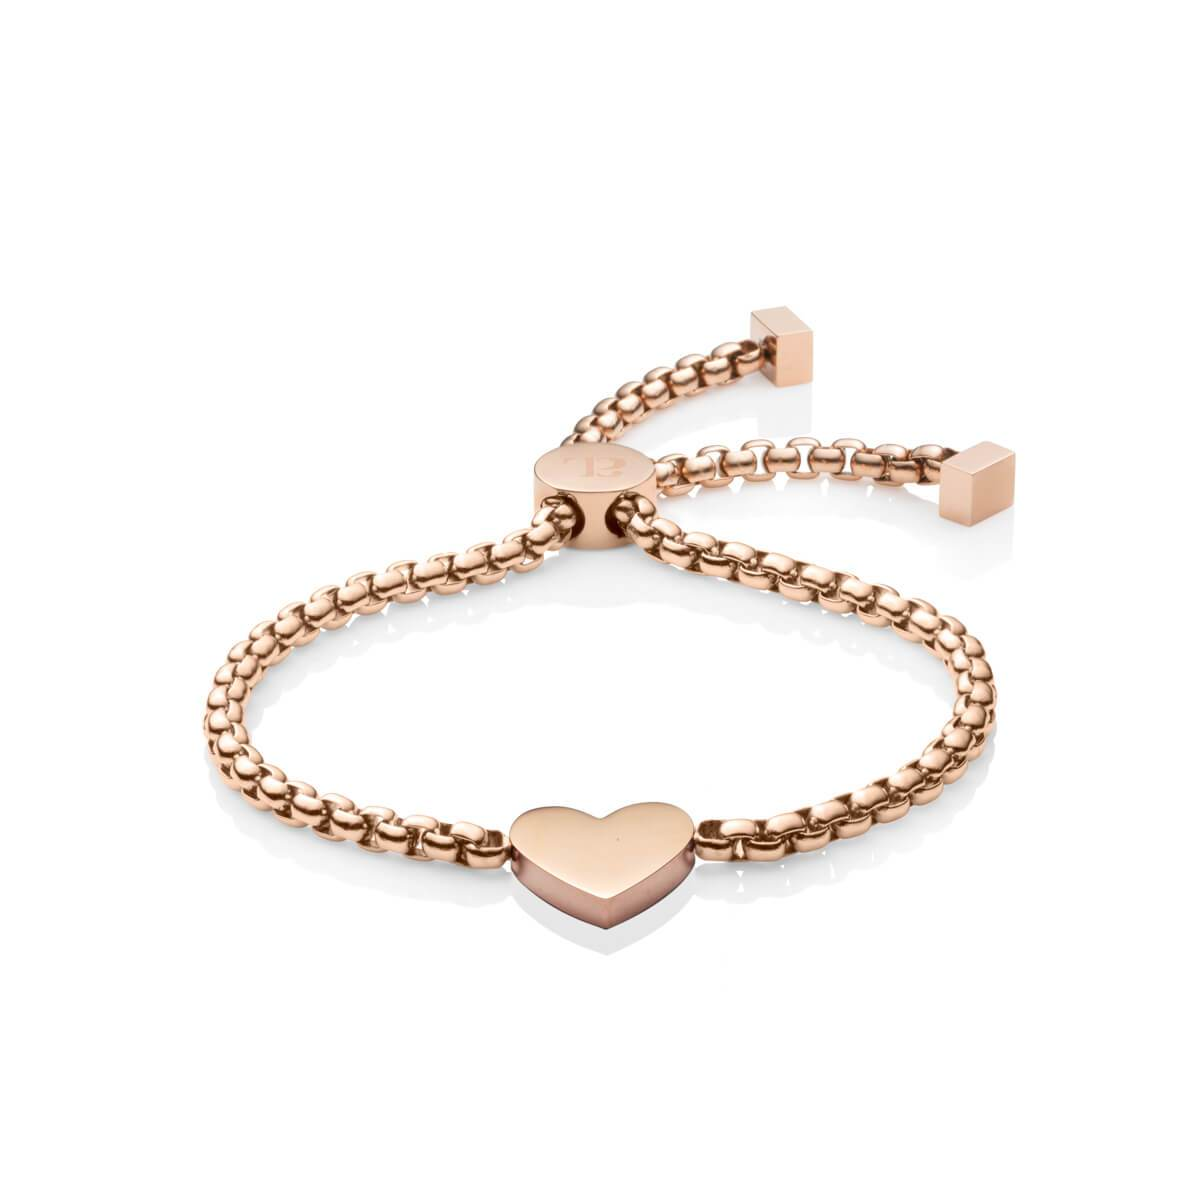 Personalise Heart Bracelet (Rose Gold)